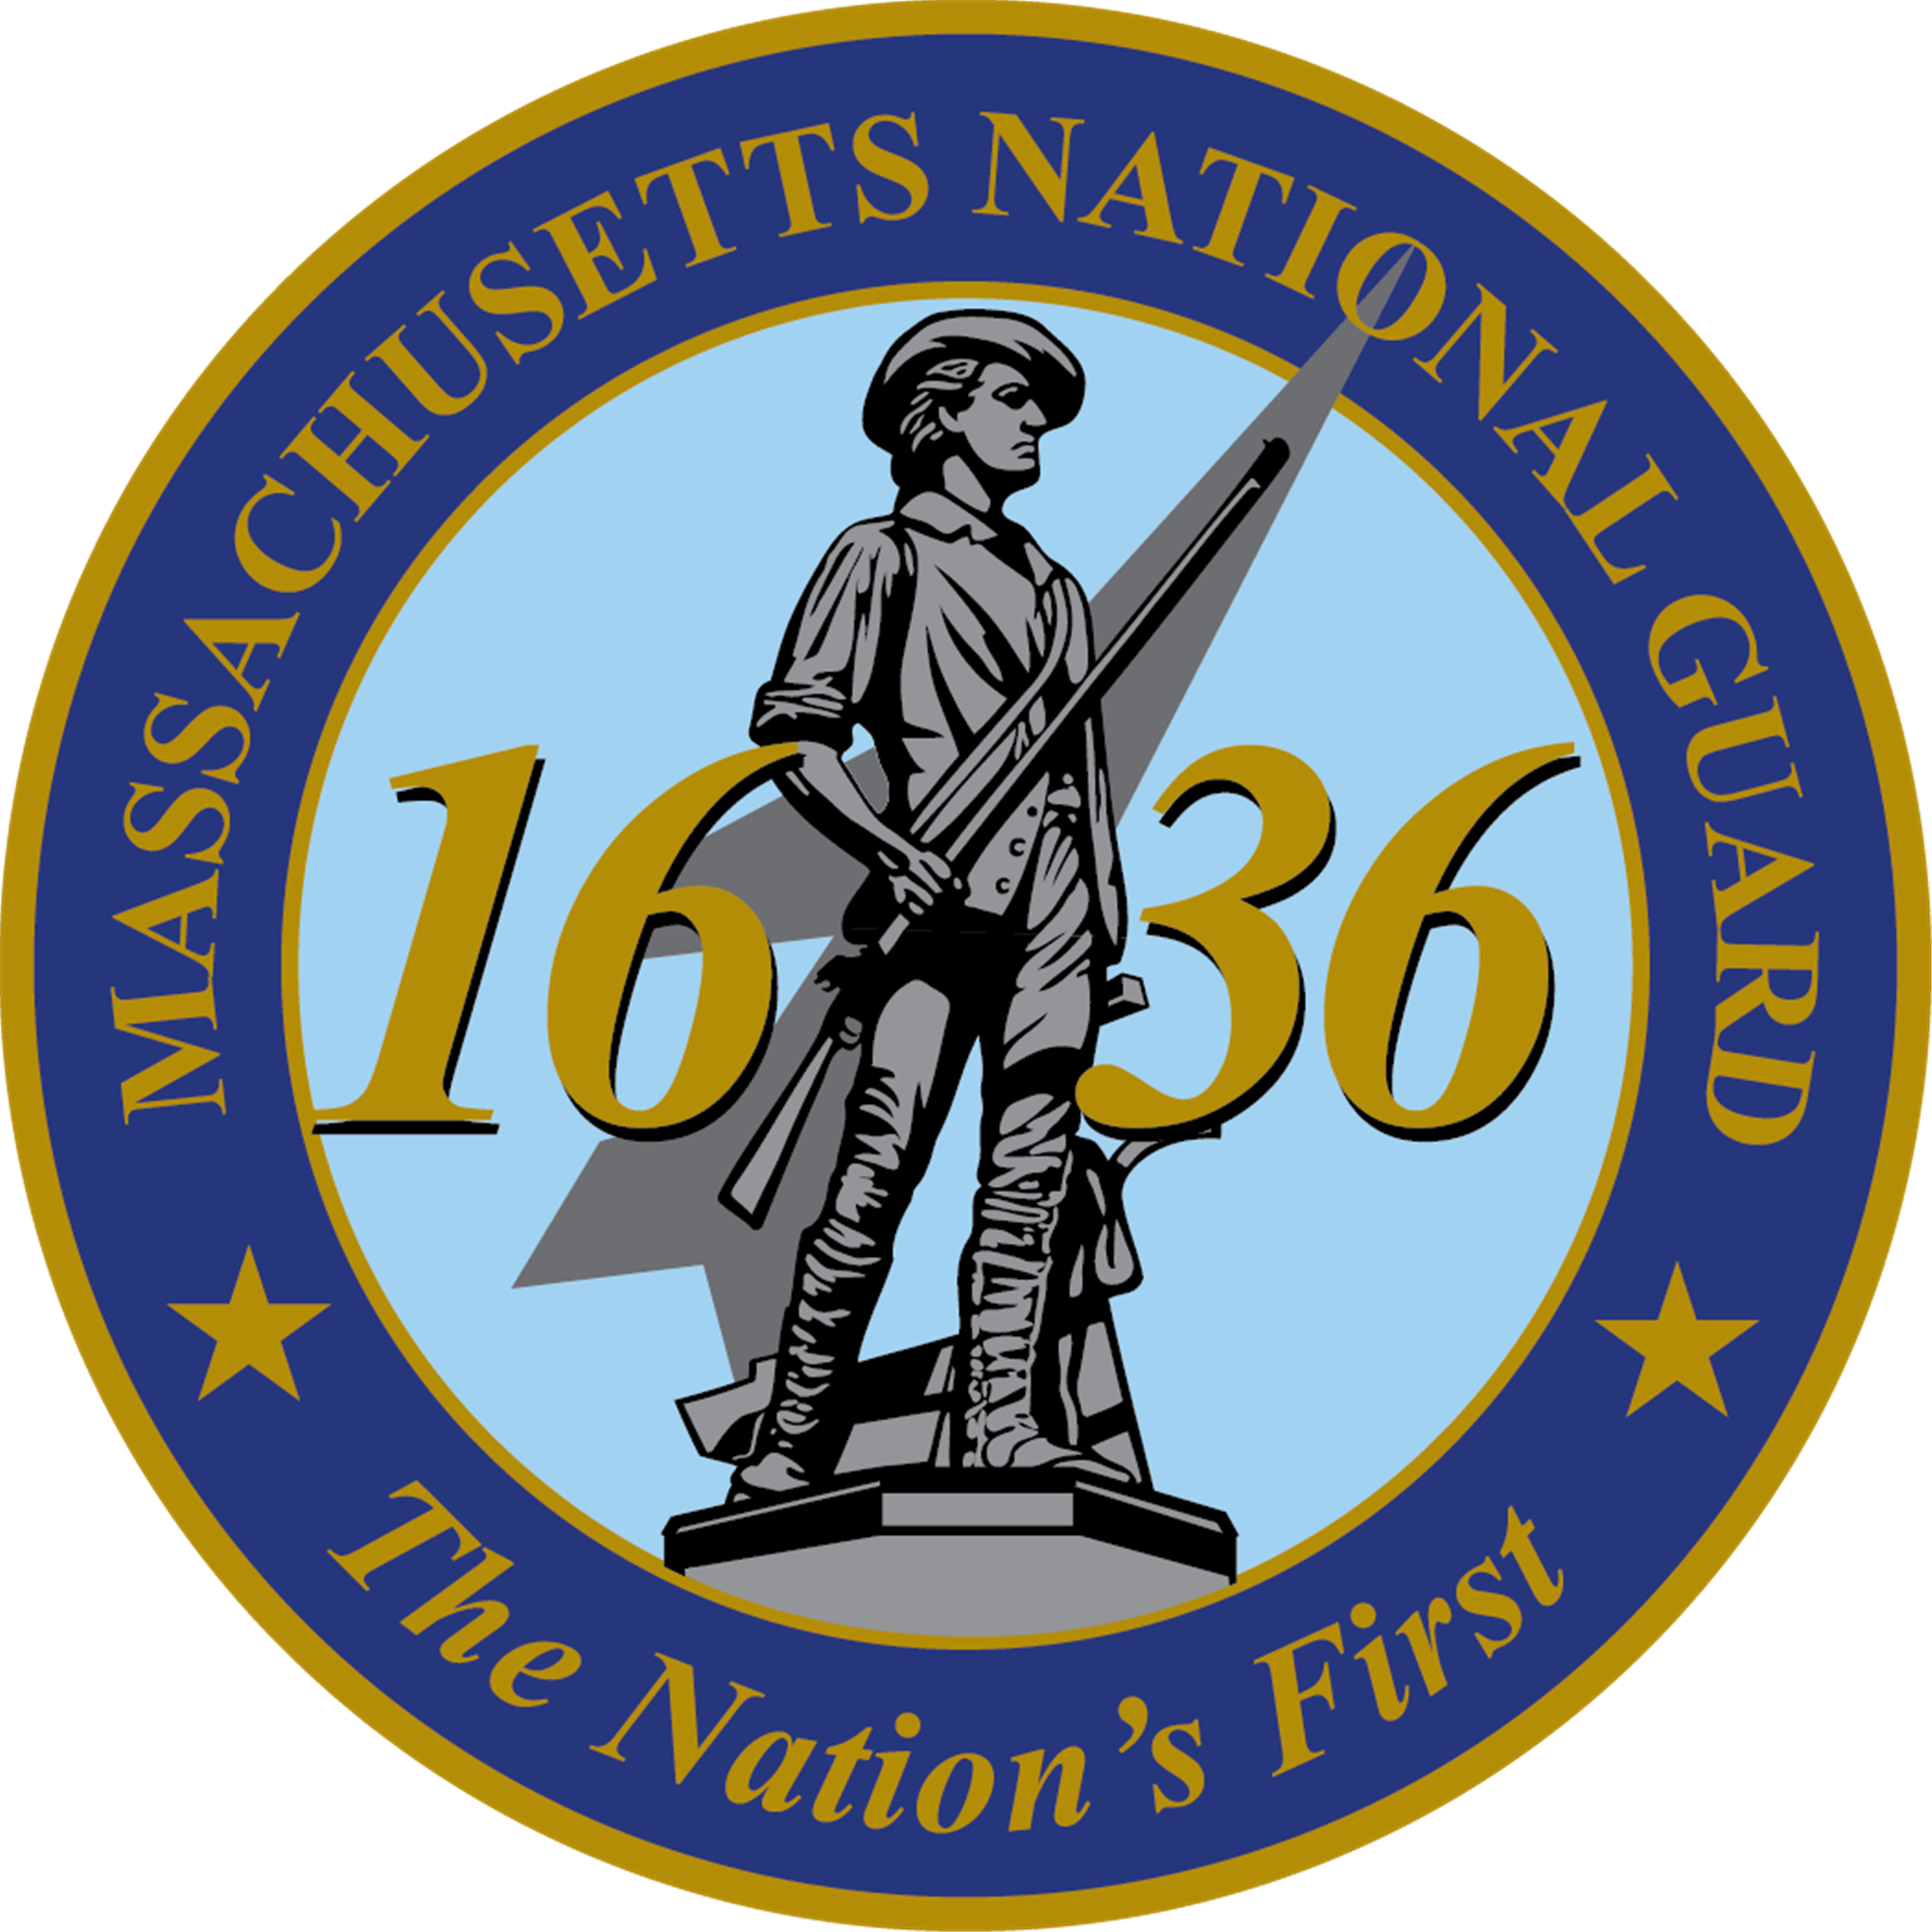 The Massachusetts National Guard has been selected as the U.S. partner for the Republic of Kenya as part of the Department of Defense's State Partnership Program, which is managed by the National Guard.